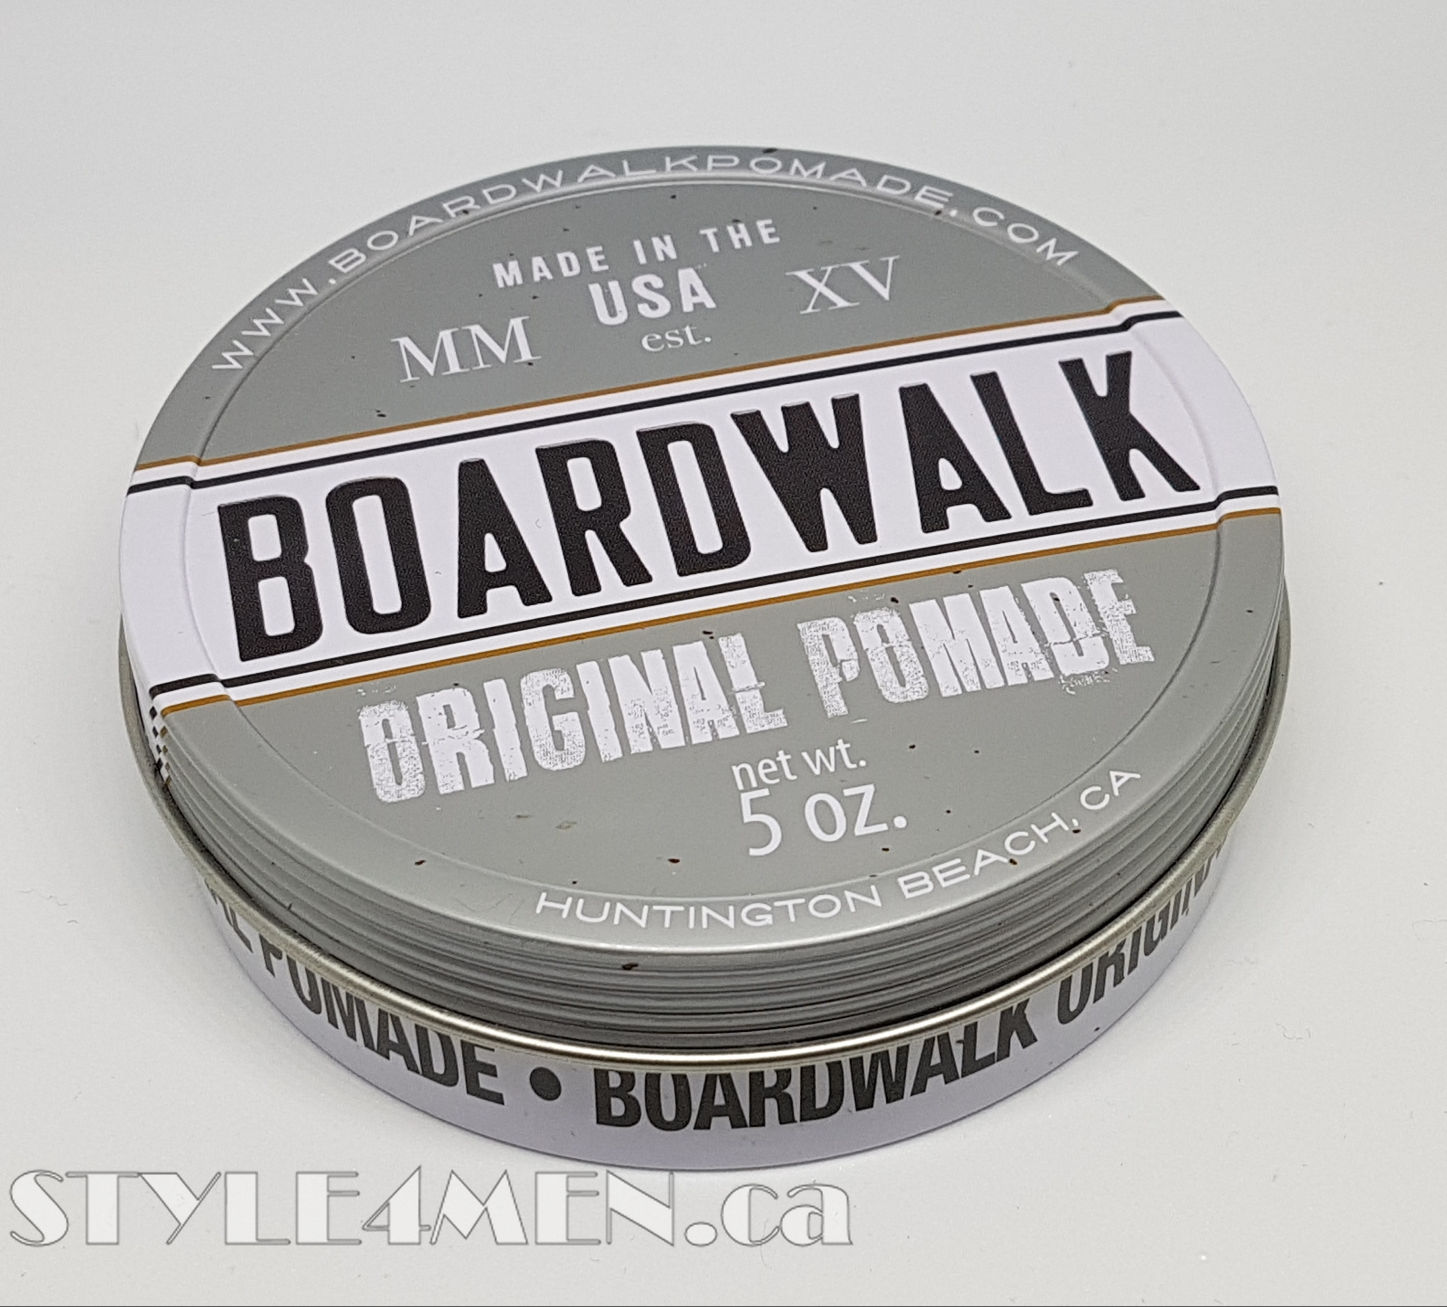 Boardwalk Original Pomade